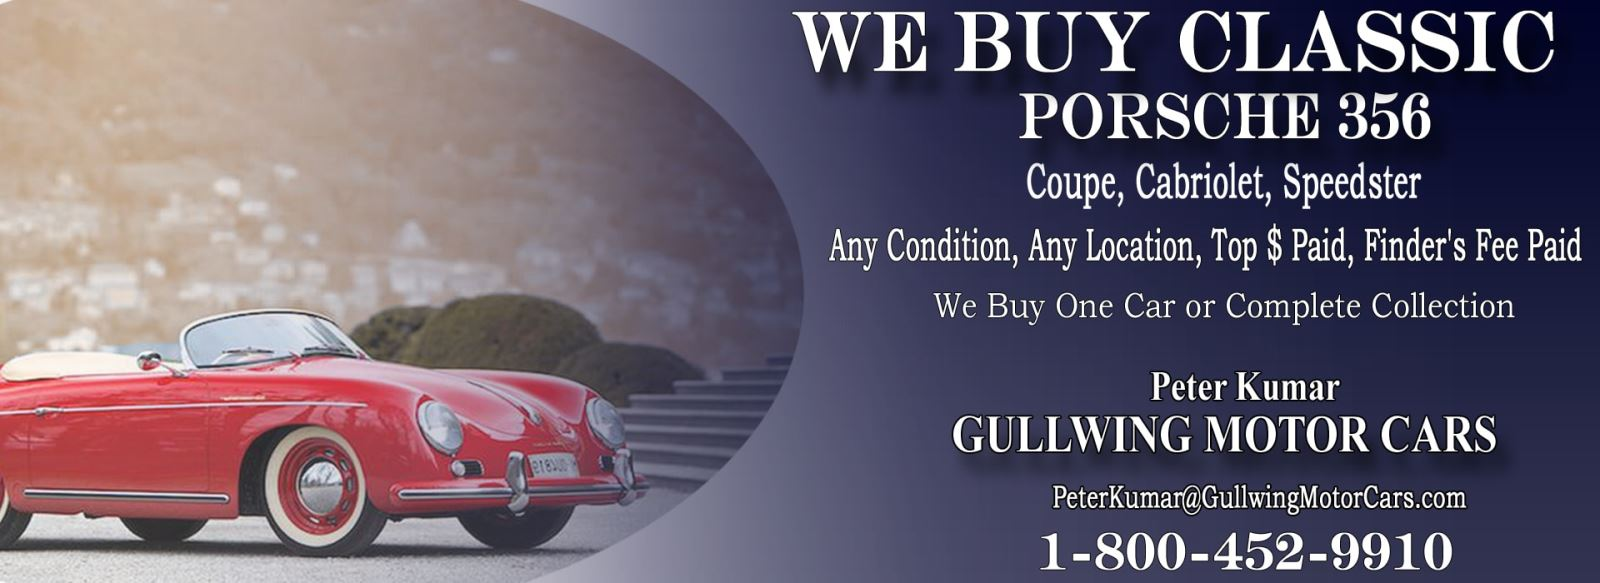 Classic Porsche 356 for sale, we buy vintage Porsche 356. Call Peter Kumar. Gullwing Motor